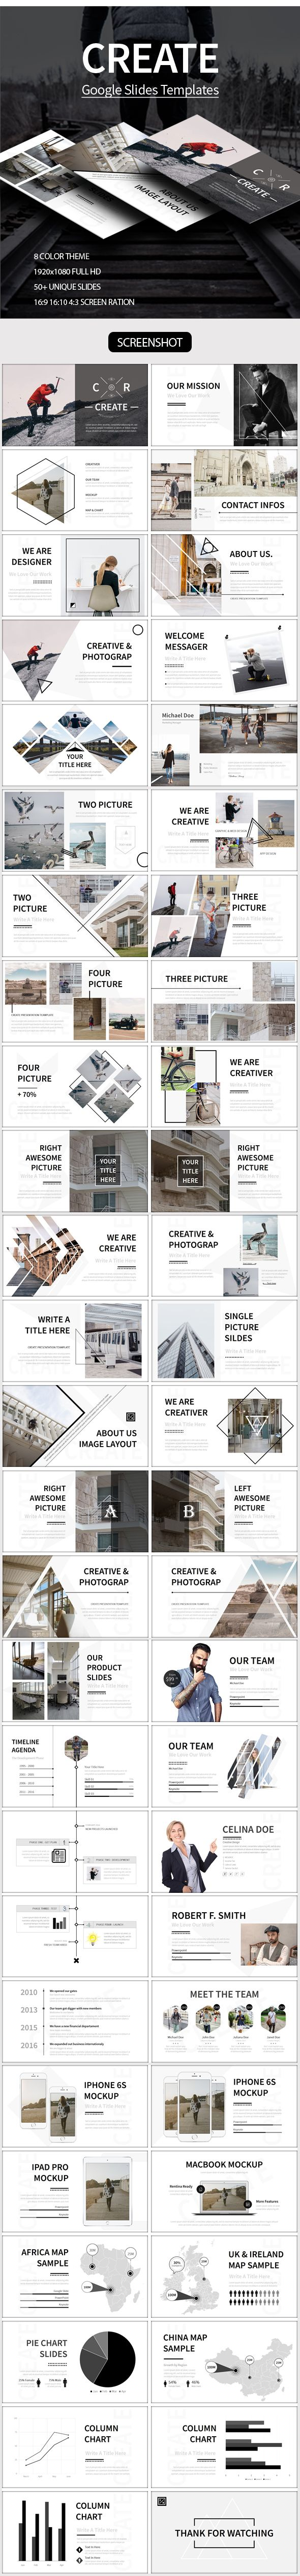 CREATE Google Slides Templates #clean #easy • Download ➝ https ...